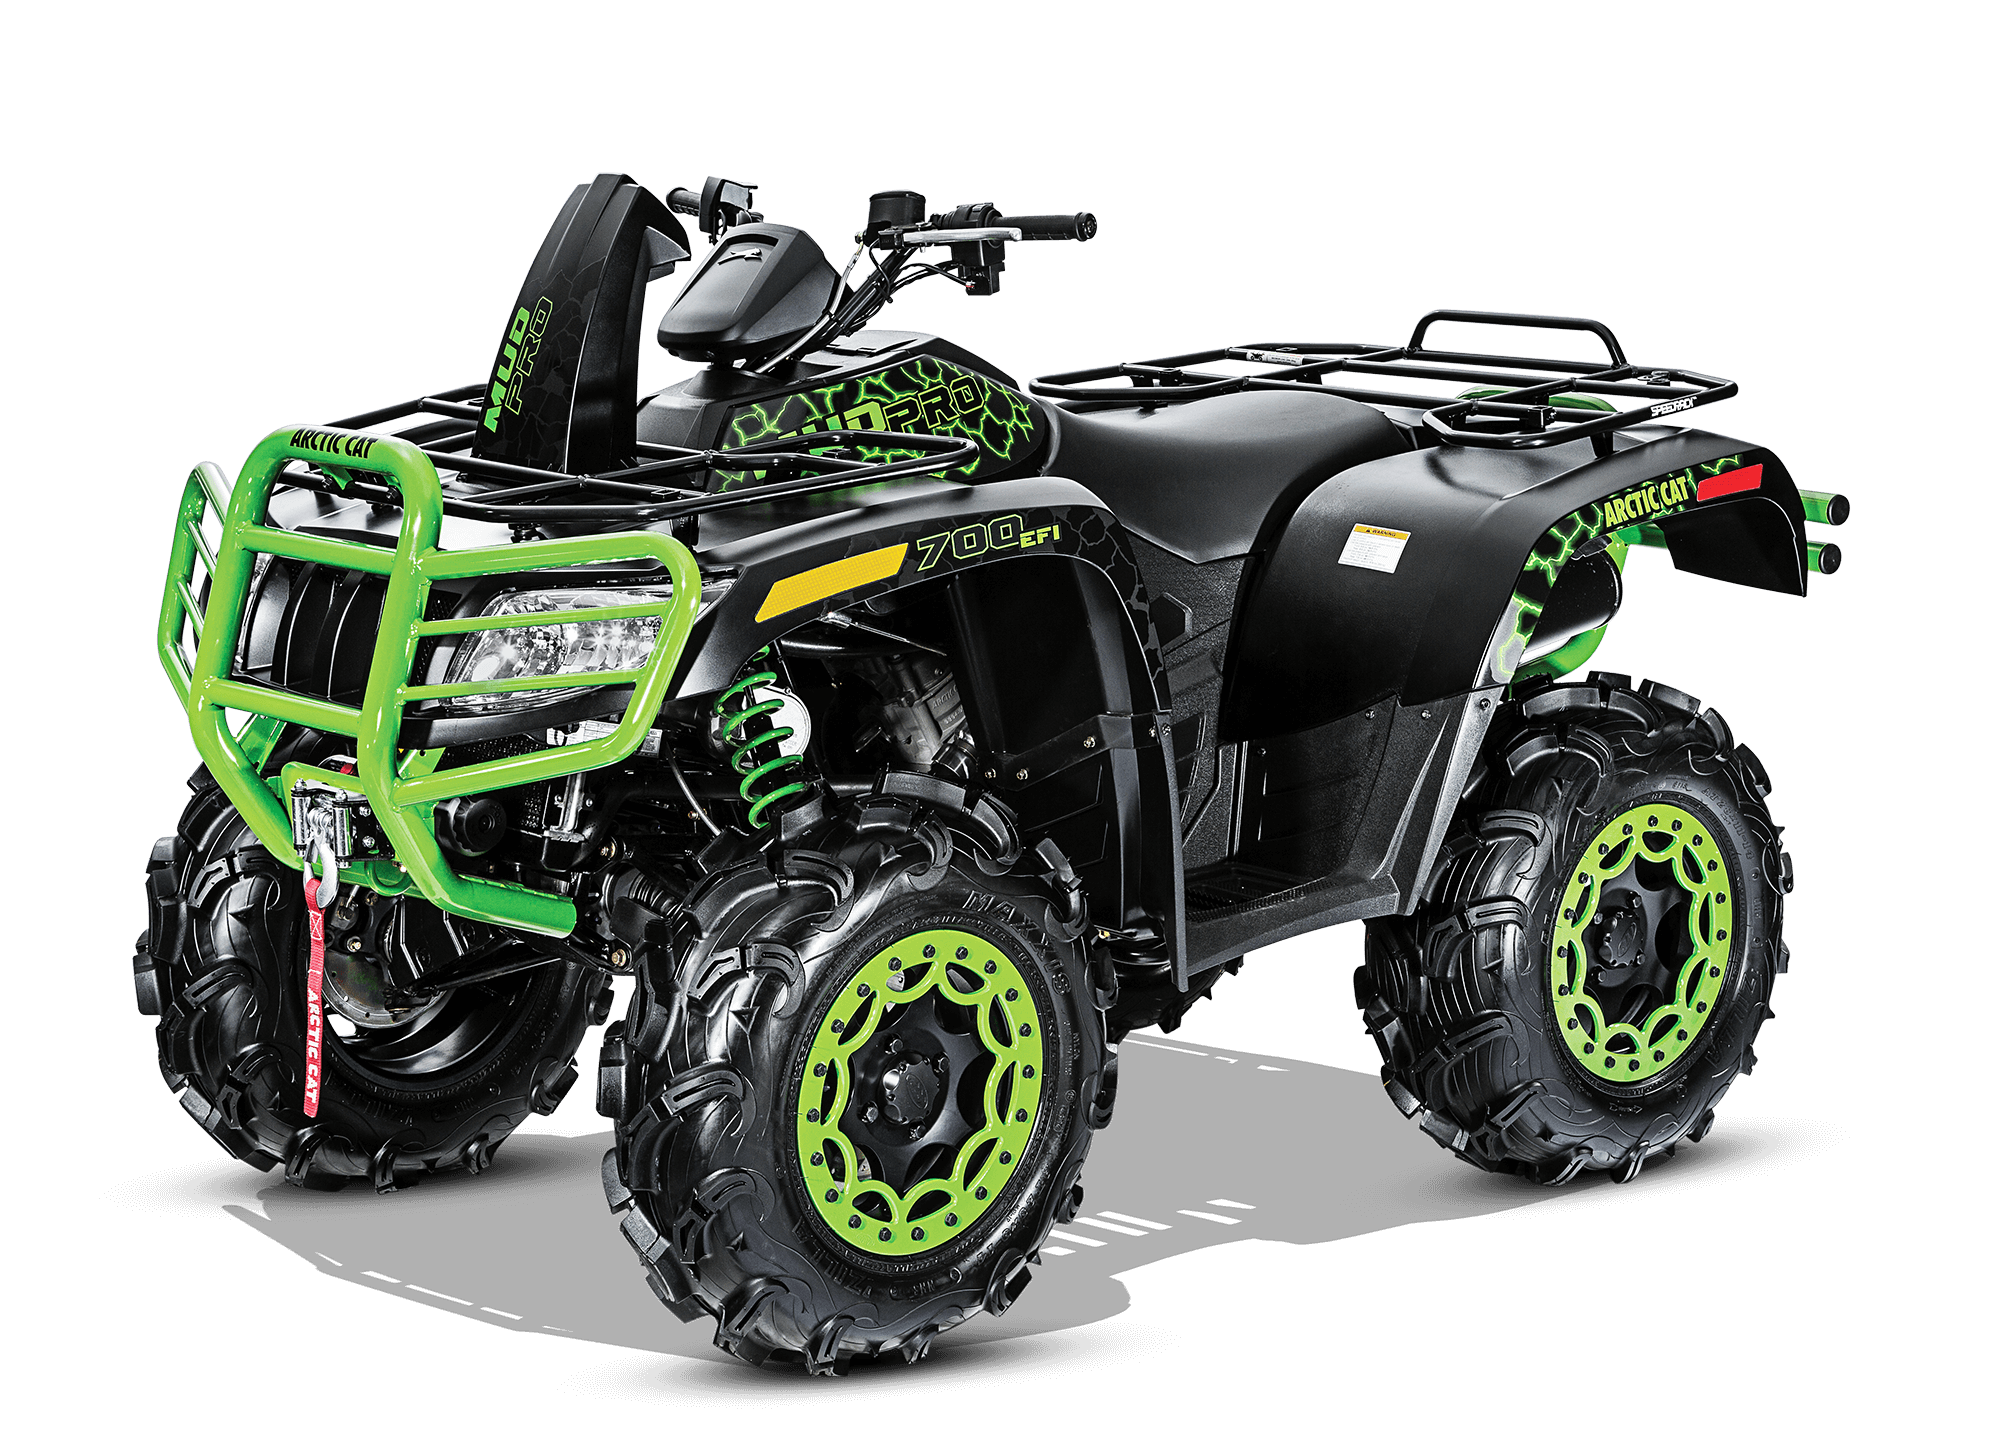 Arctic cat clipart clipart black and white download Arctic Cat MudPro 700 Limited with a powerful 695 CC, SOHC, 4-Stroke ... clipart black and white download